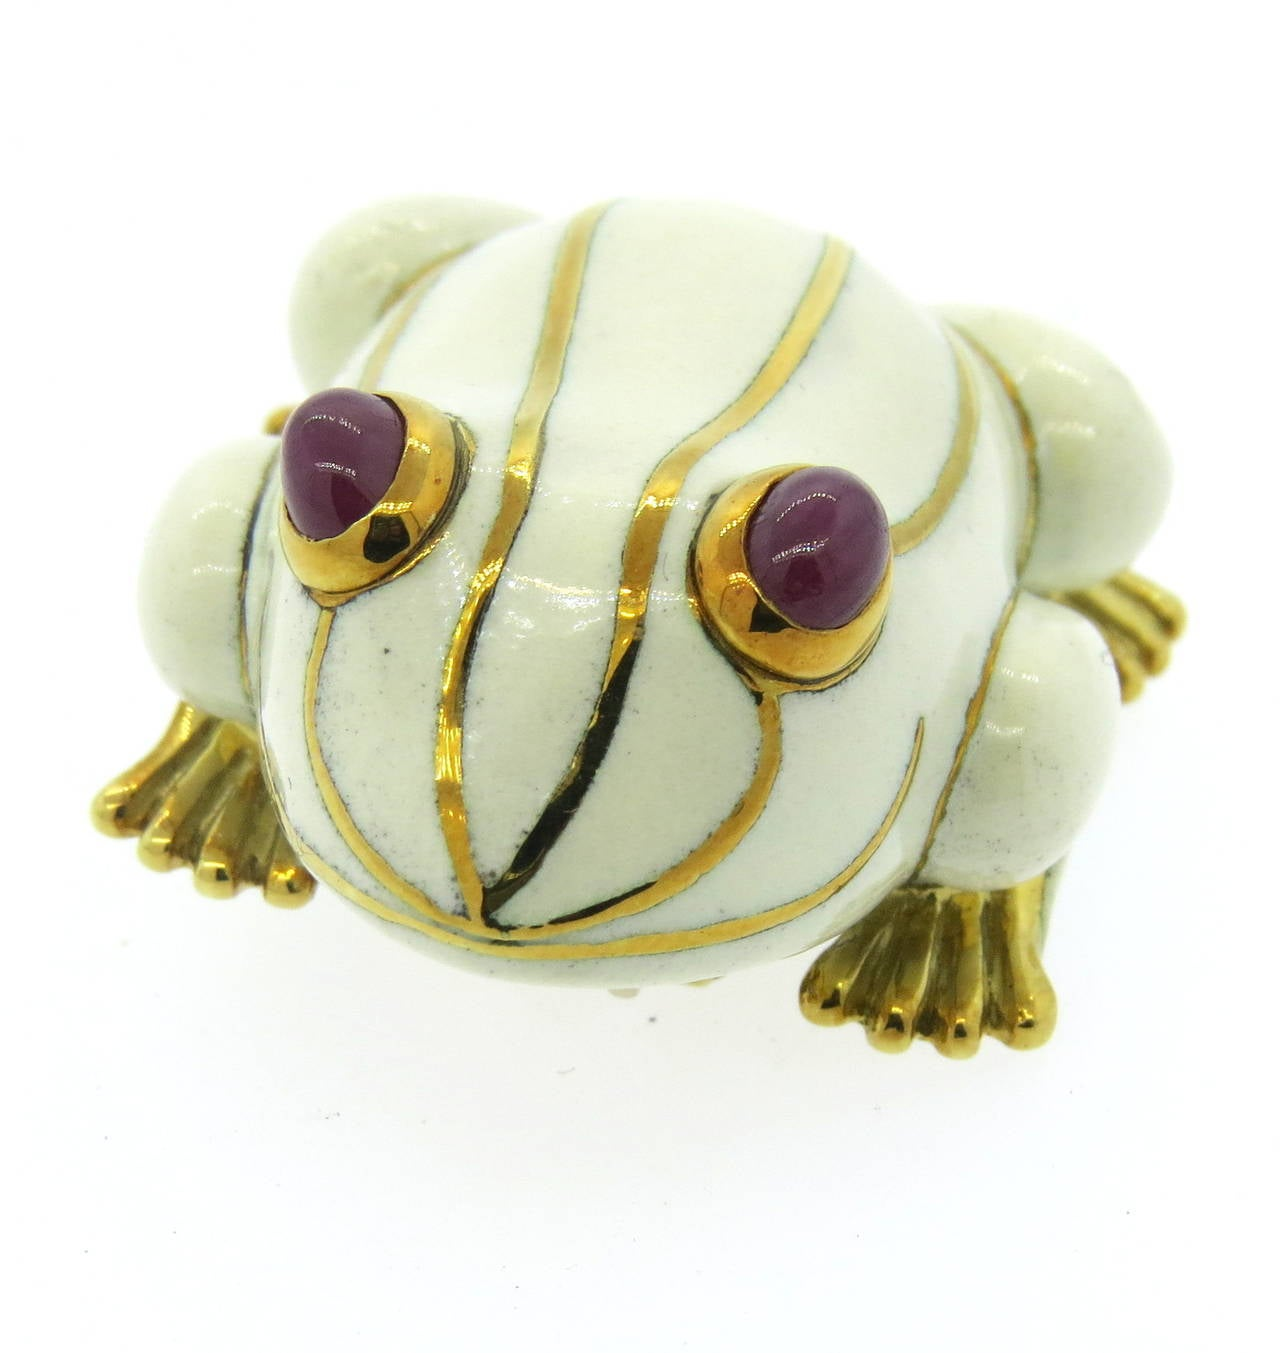 18k gold David Webb frog brooch, decorated with white enamel and ruby cabochon eyes. Brooch measures 43mm x 30mm. Marked Webb and 18k. weight - 41.7gr Current Retail Price $12,000.00